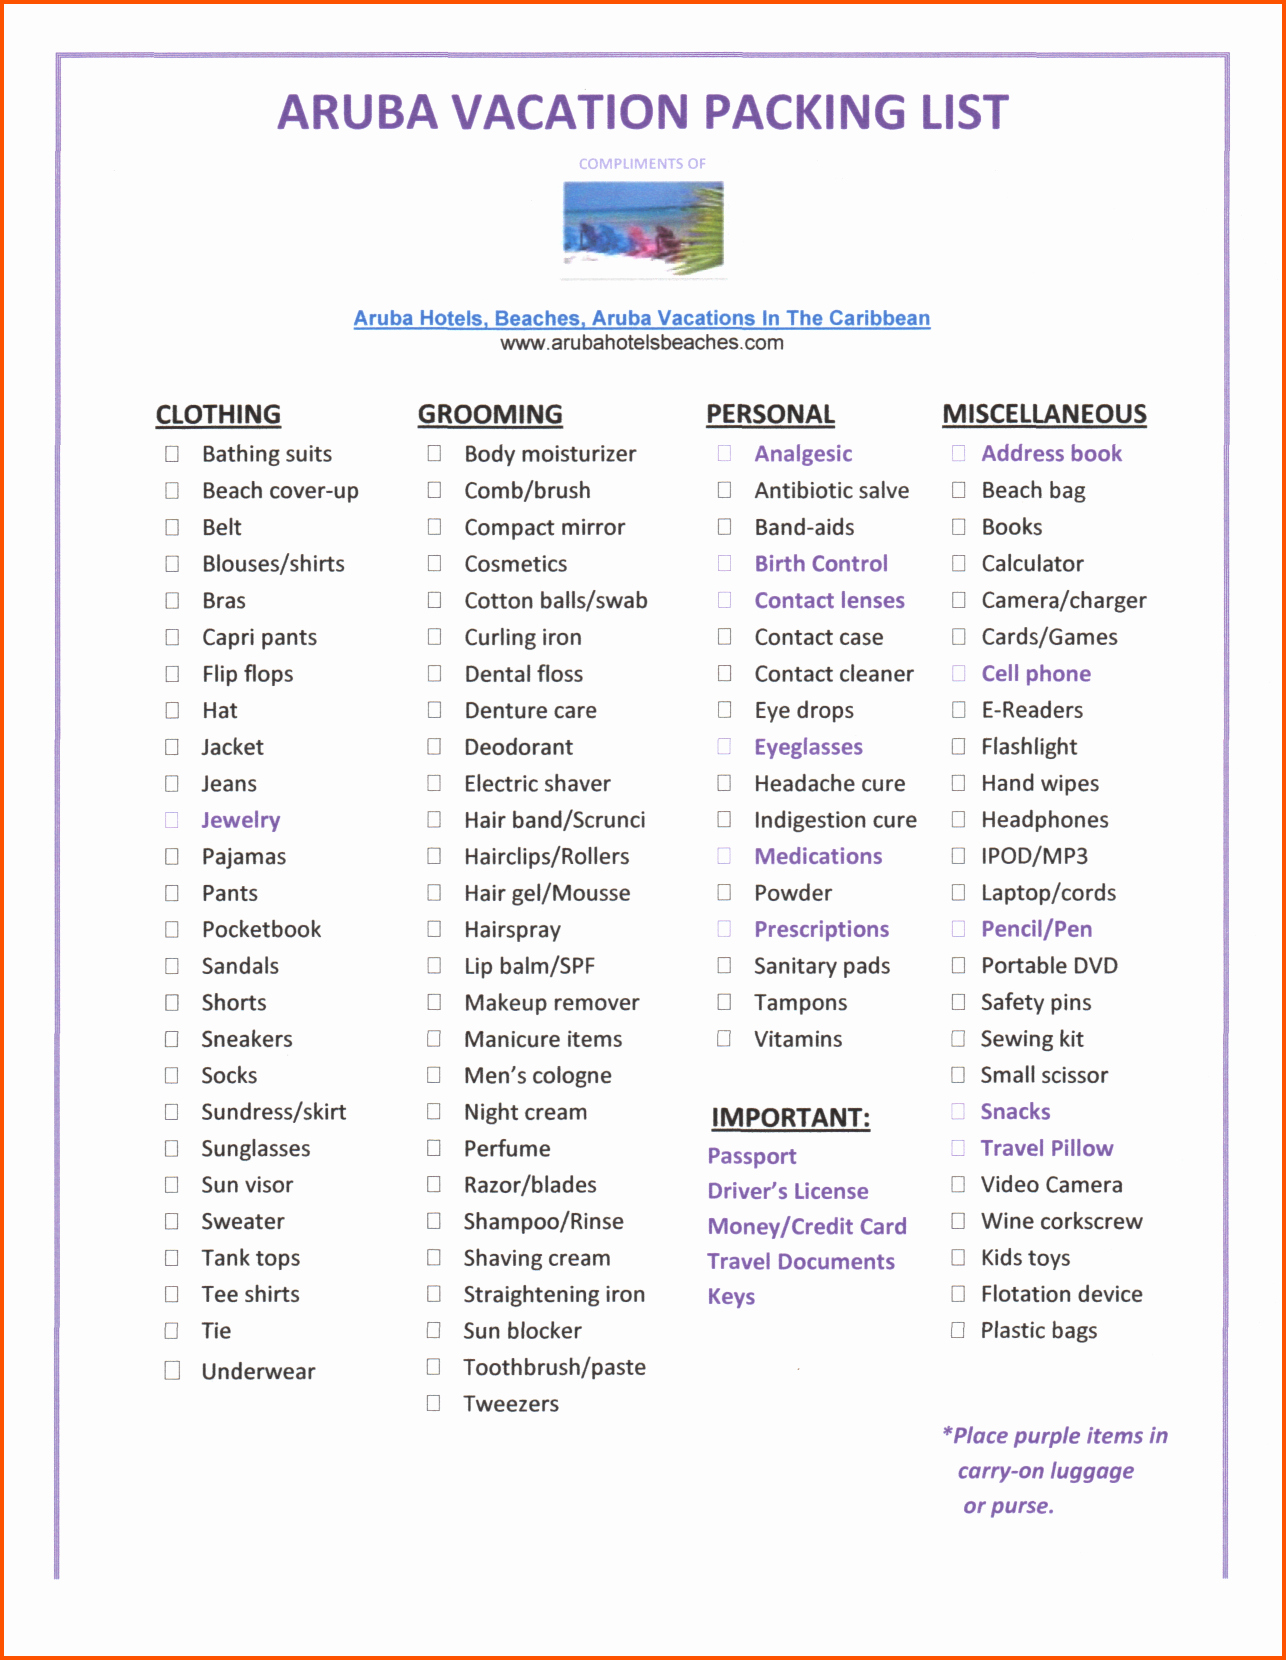 Packing List for Vacation Template Awesome Packing List Template Word Portablegasgrillweber